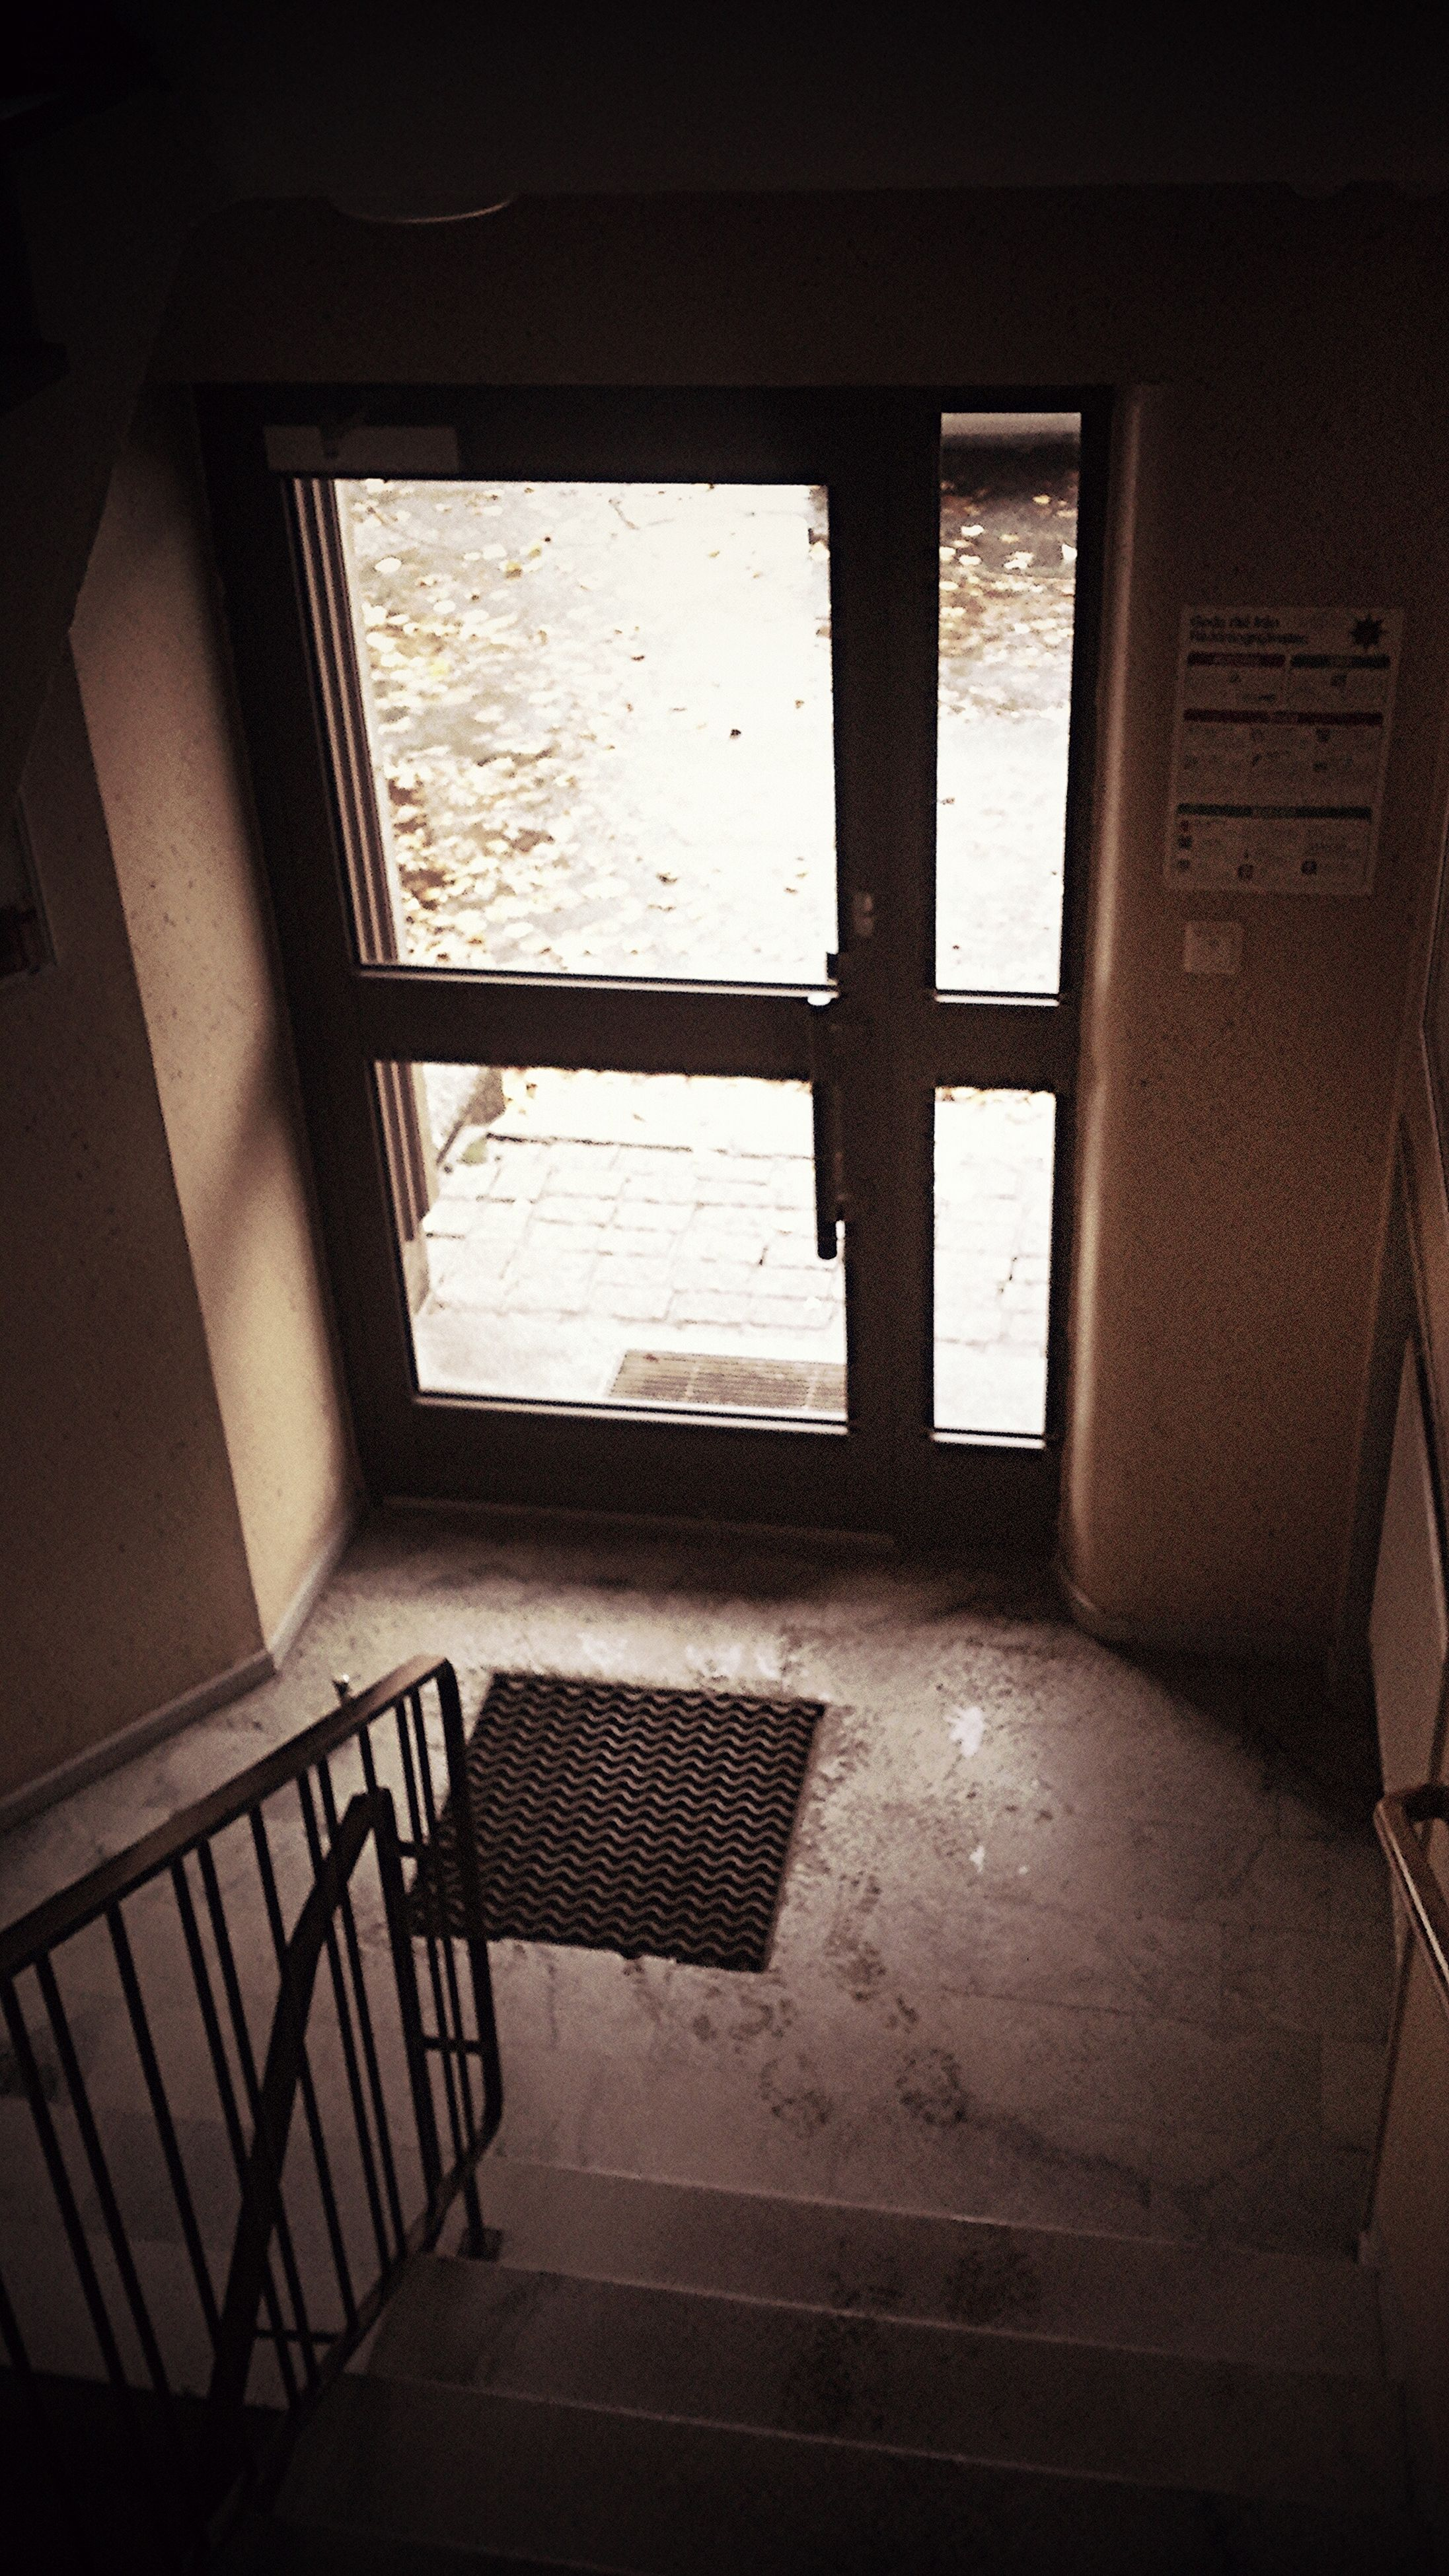 indoors, window, empty, absence, glass - material, chair, architecture, built structure, home interior, transparent, table, flooring, sunlight, shadow, house, day, no people, door, tiled floor, reflection